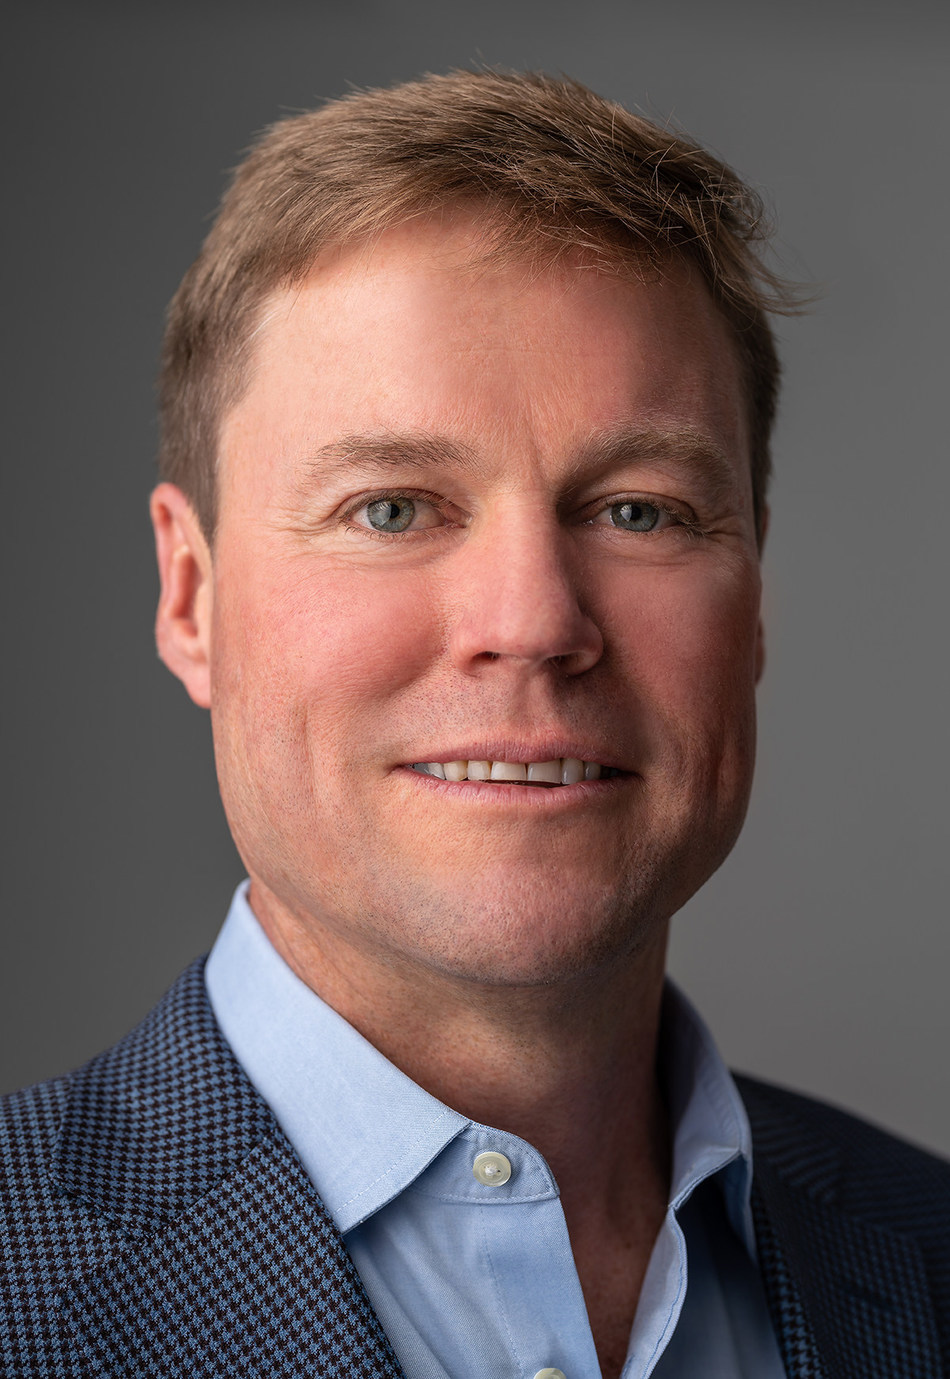 Kyle Ford, a seasoned technology executive, will be ArbiterSports president and CEO effective June 10, 2019.